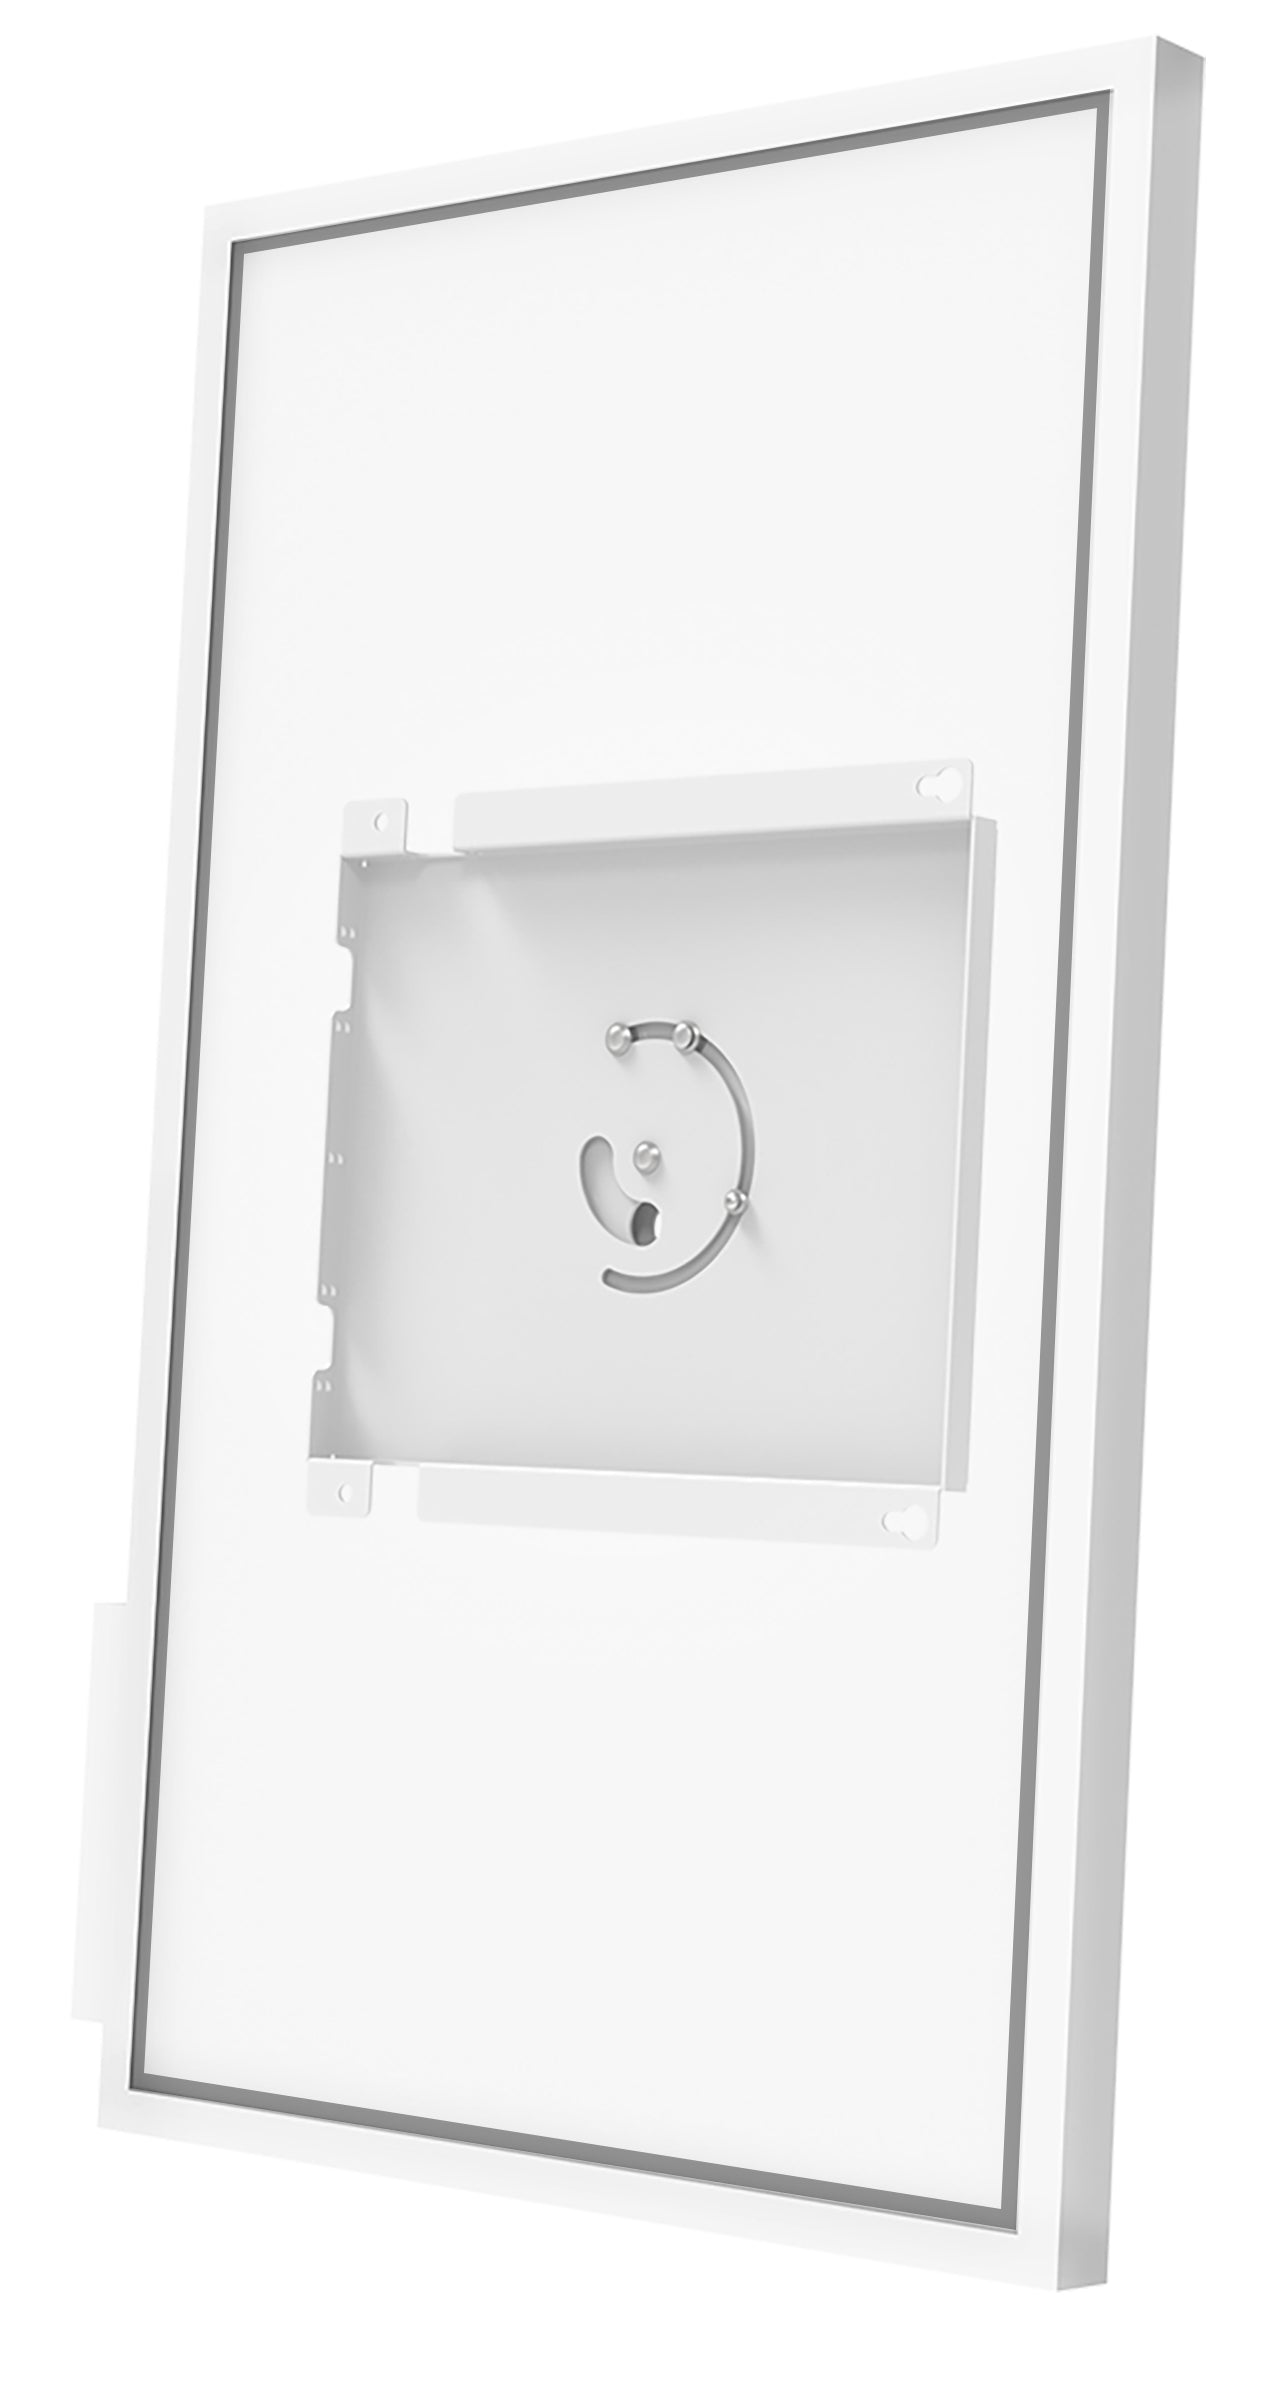 Rotational Wall Mount For The 55 Quot Samsung Flip Display